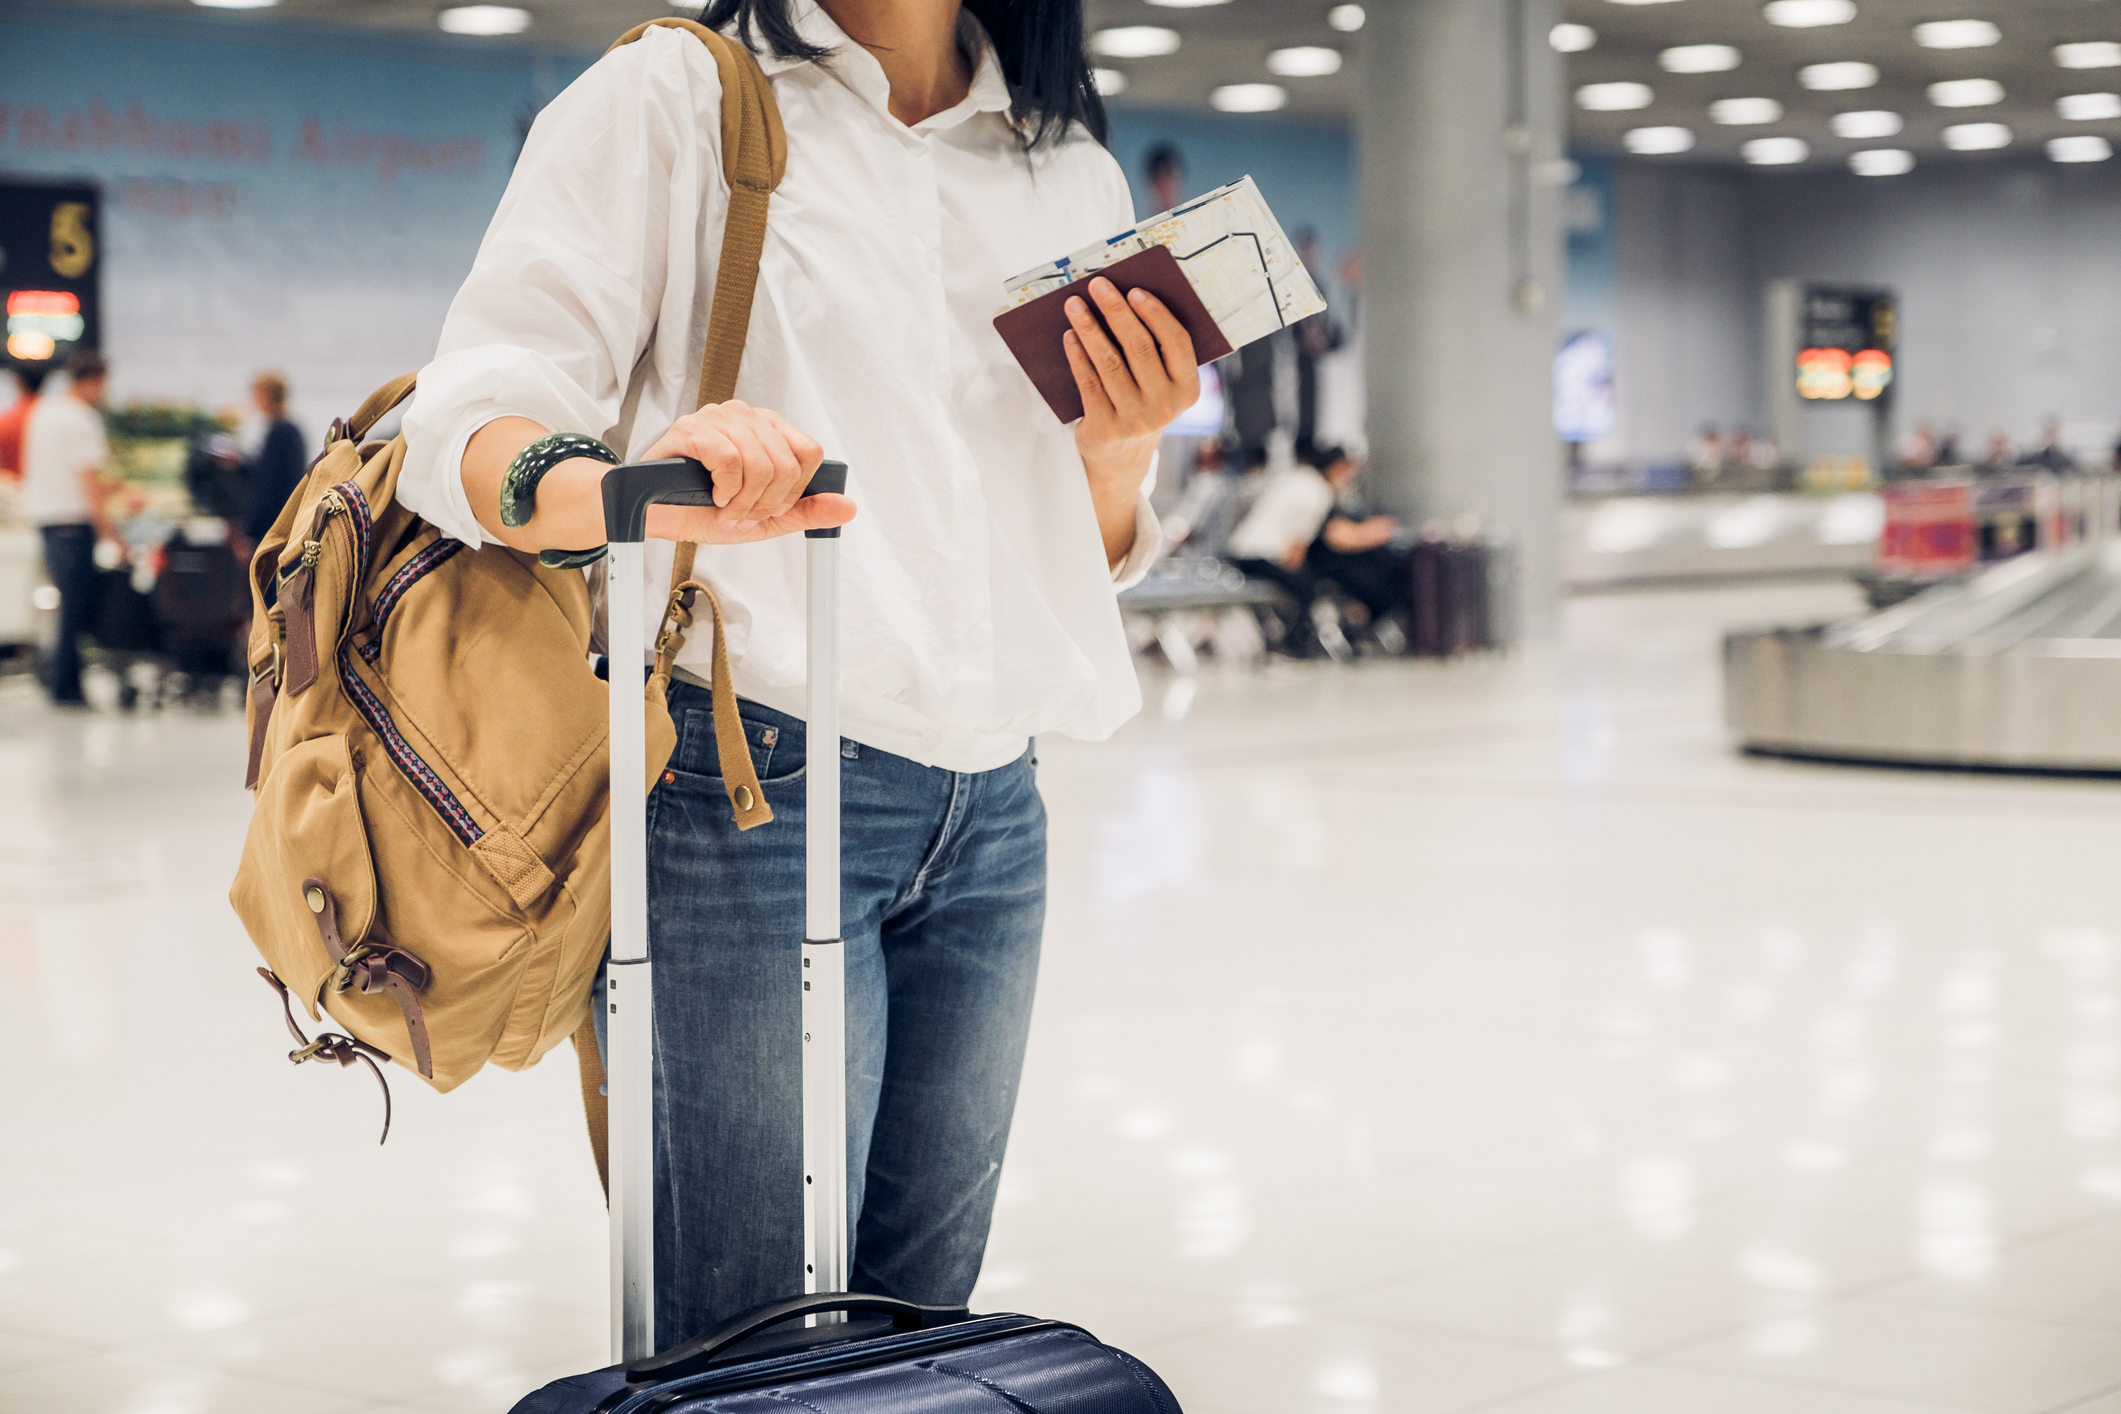 How to effectively train employees on travel expenses